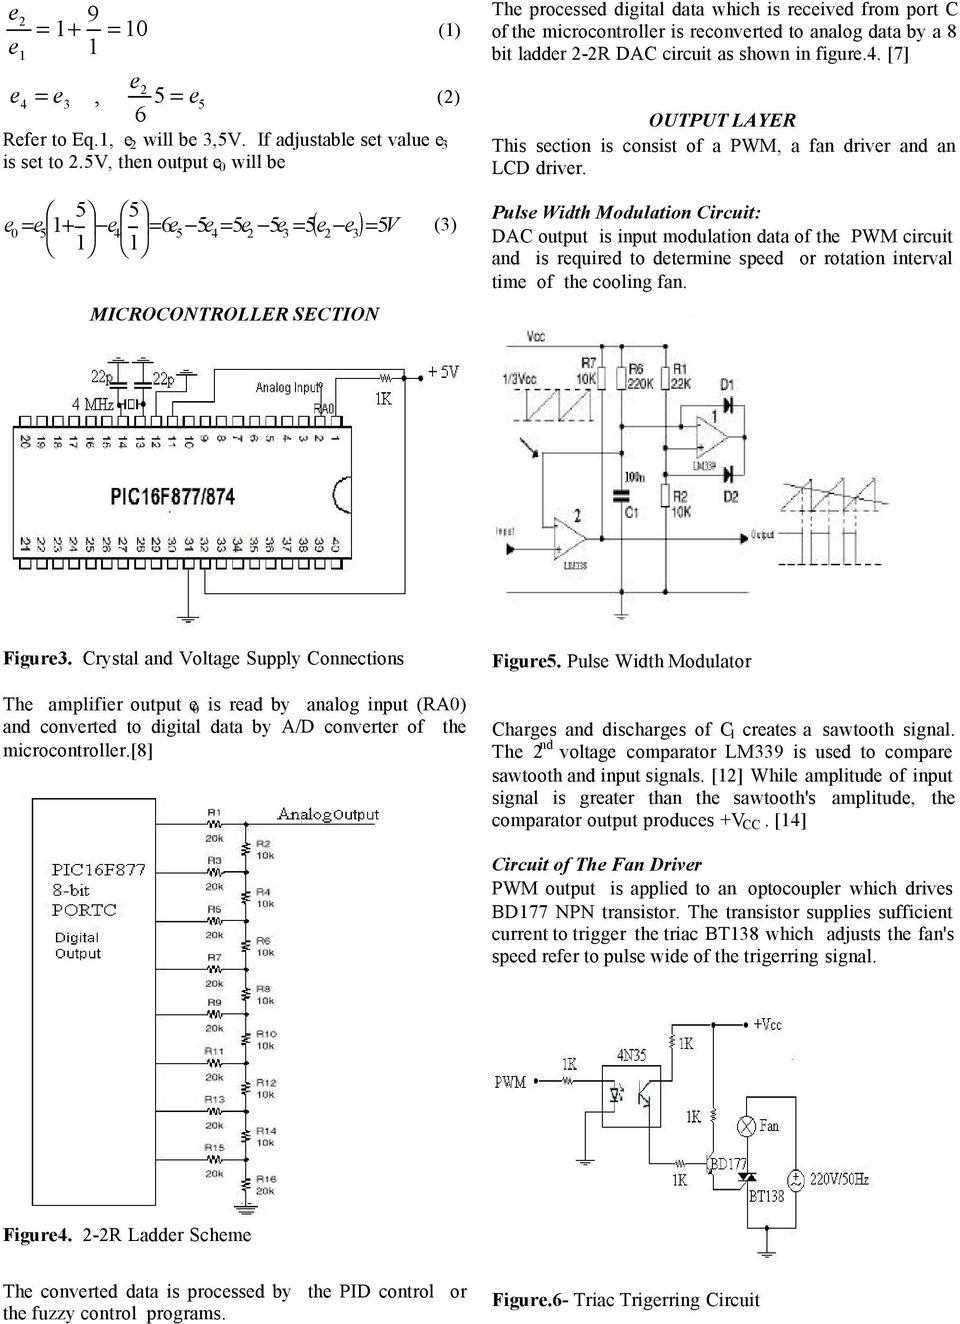 Temperature Control Applications By Means Of A Pic16f877 Switching Power Supply Lm3524 And Lm324 Circuit Wiring Diagrams Is Reconverted To Analog Data 8 Bit Ladder 2 2r Dac As